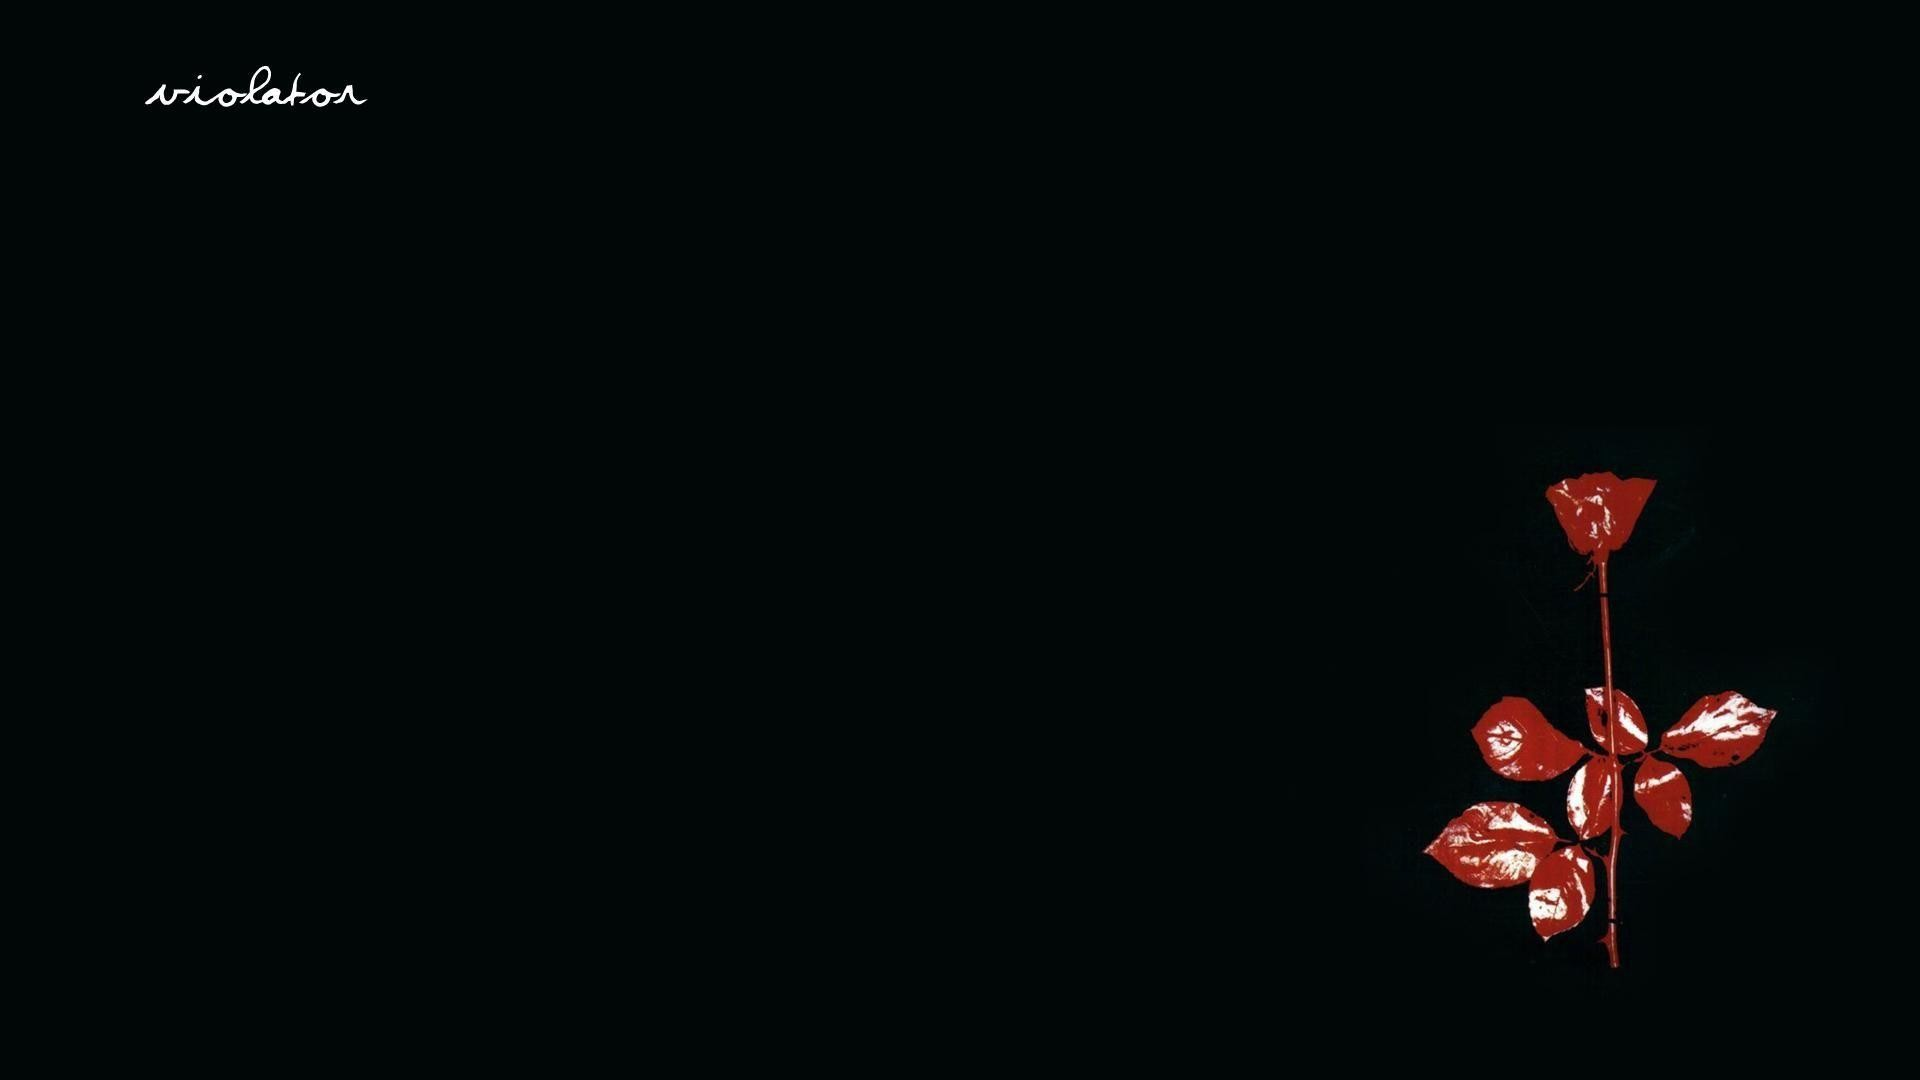 1920x1080 ... Depeche Mode: Violator by qaz00 on DeviantArt